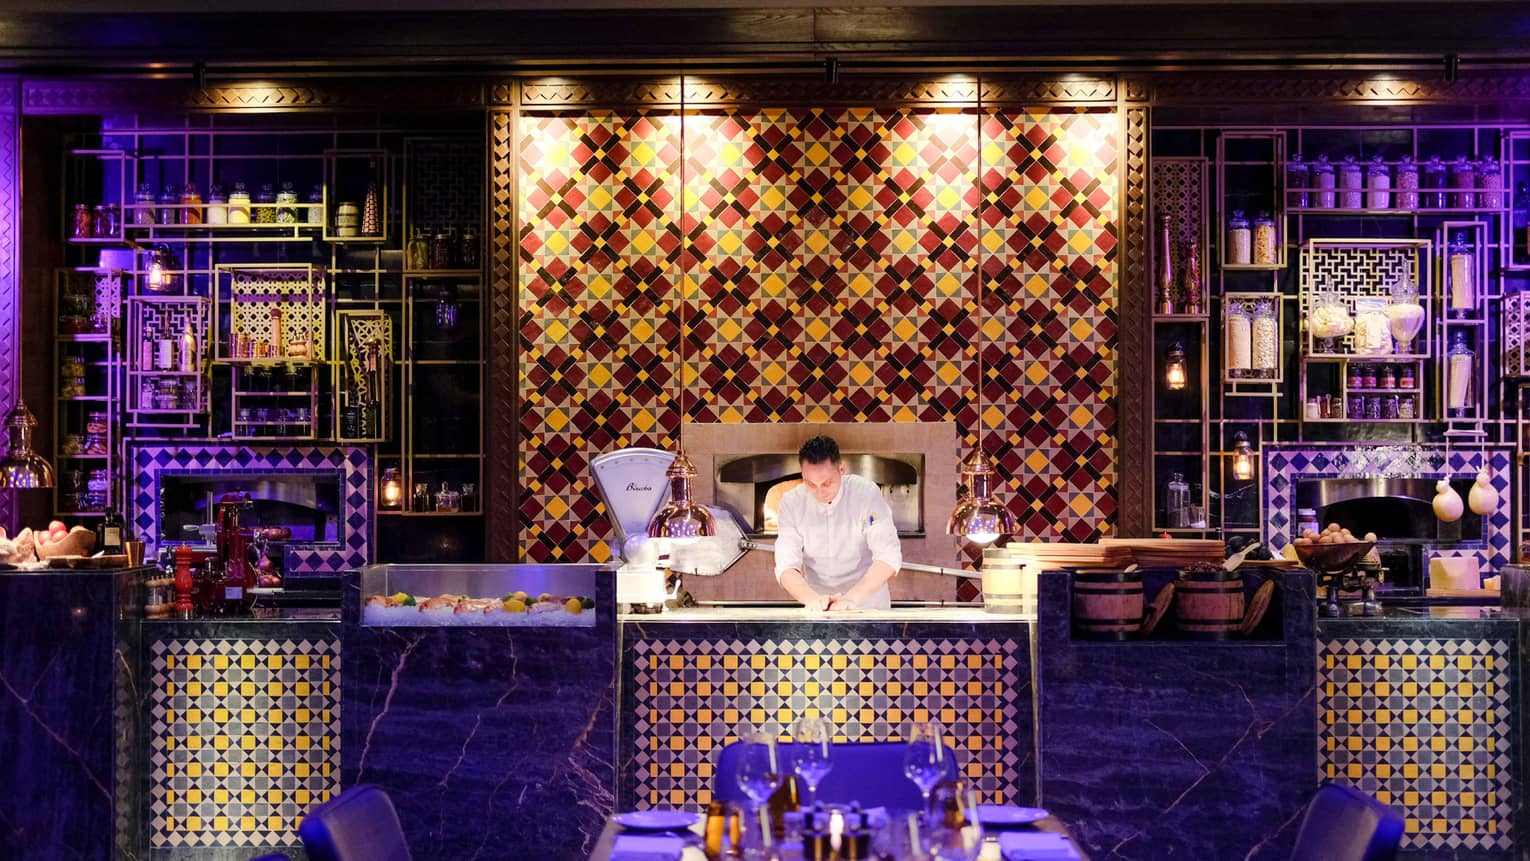 Chef presses dough on counter with colourful tiles, lights, in front of dining table